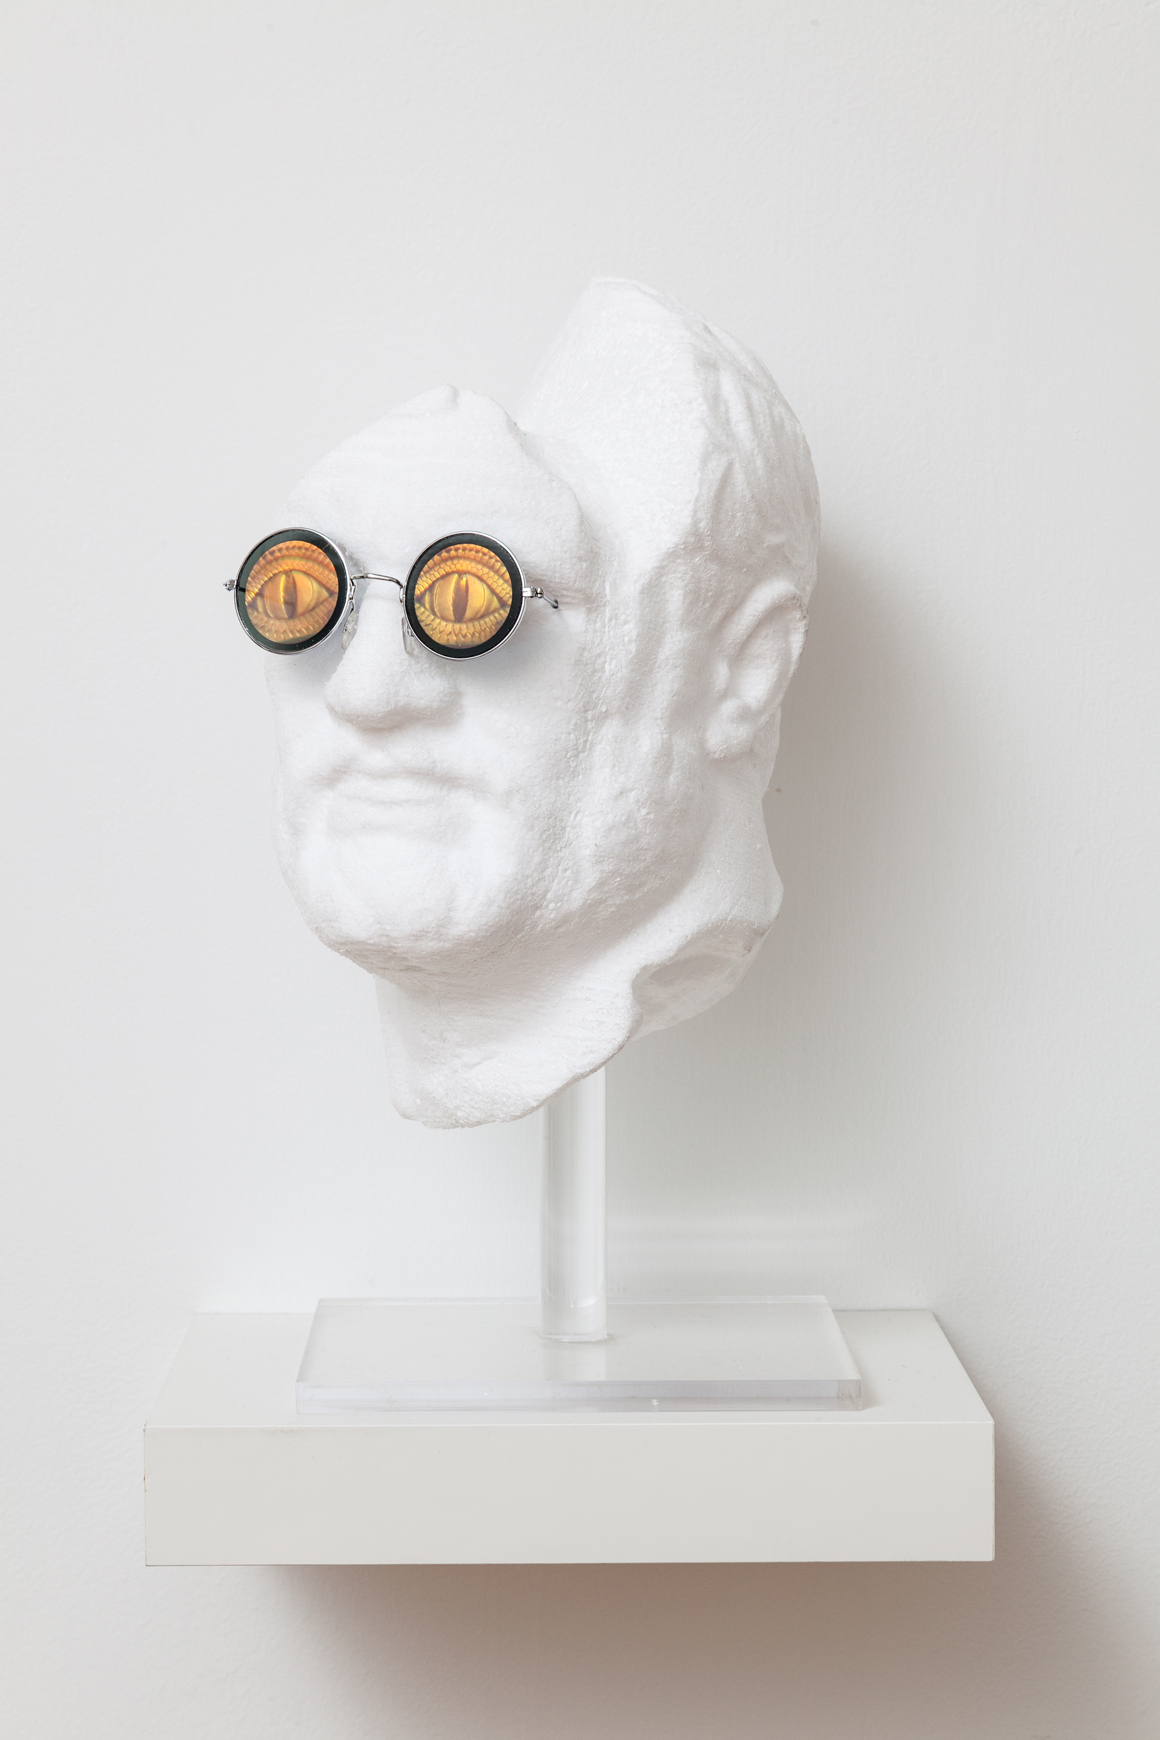 "<p><span class=""name"">Dmitri Obergfell</span><br><em>Untitled (head)</em><span class='media'>Polystyrene, holographic sunglasses</span>16 x 9 x 9 in (40.6 x 22.9 x 22.9 cm)<br>2017<br><a class='inquire' href='mailto:info@gildargallery.com?subject=Artwork Inquiry DOBE0030&body=I am interested in finding out more about Untitled (head) by Dmitri Obergfell'>Inquire</a></p>"